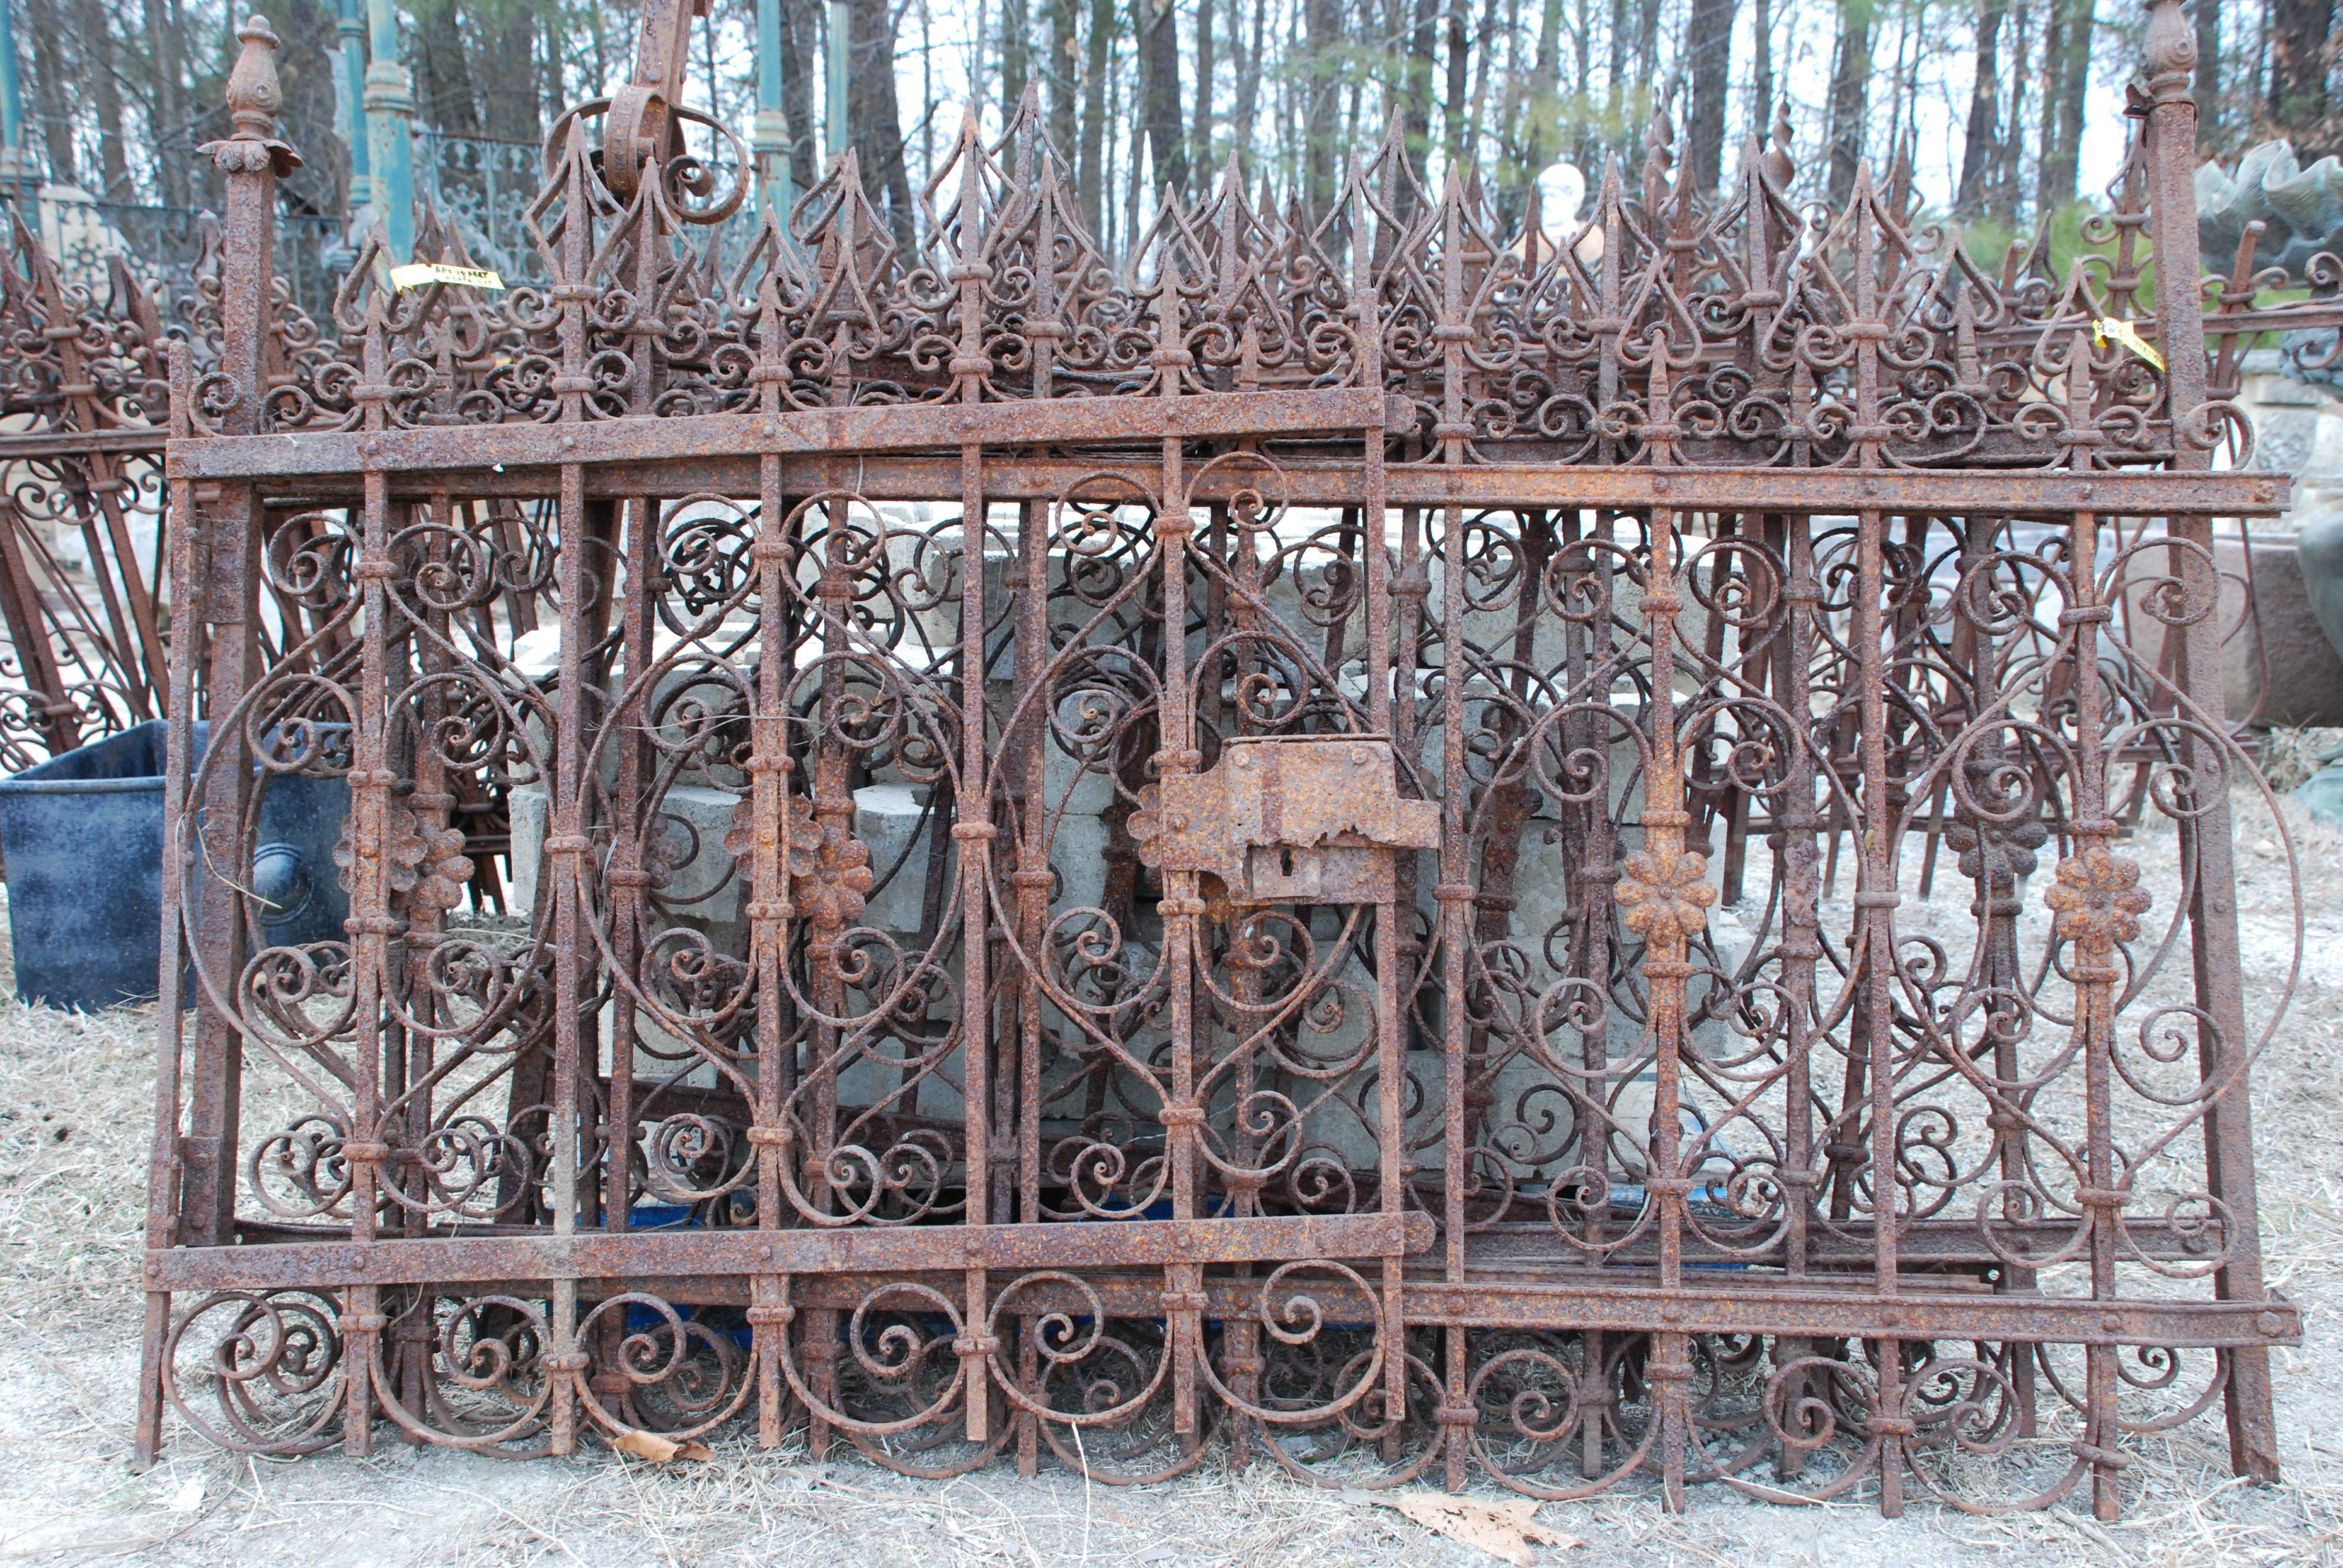 Antique Wrought Iron Fencing Antiques Antique Antique Fence Architectural Fence Wrought Iro Wrought Iron Fence Panels Wrought Iron Fences Cast Iron Fence